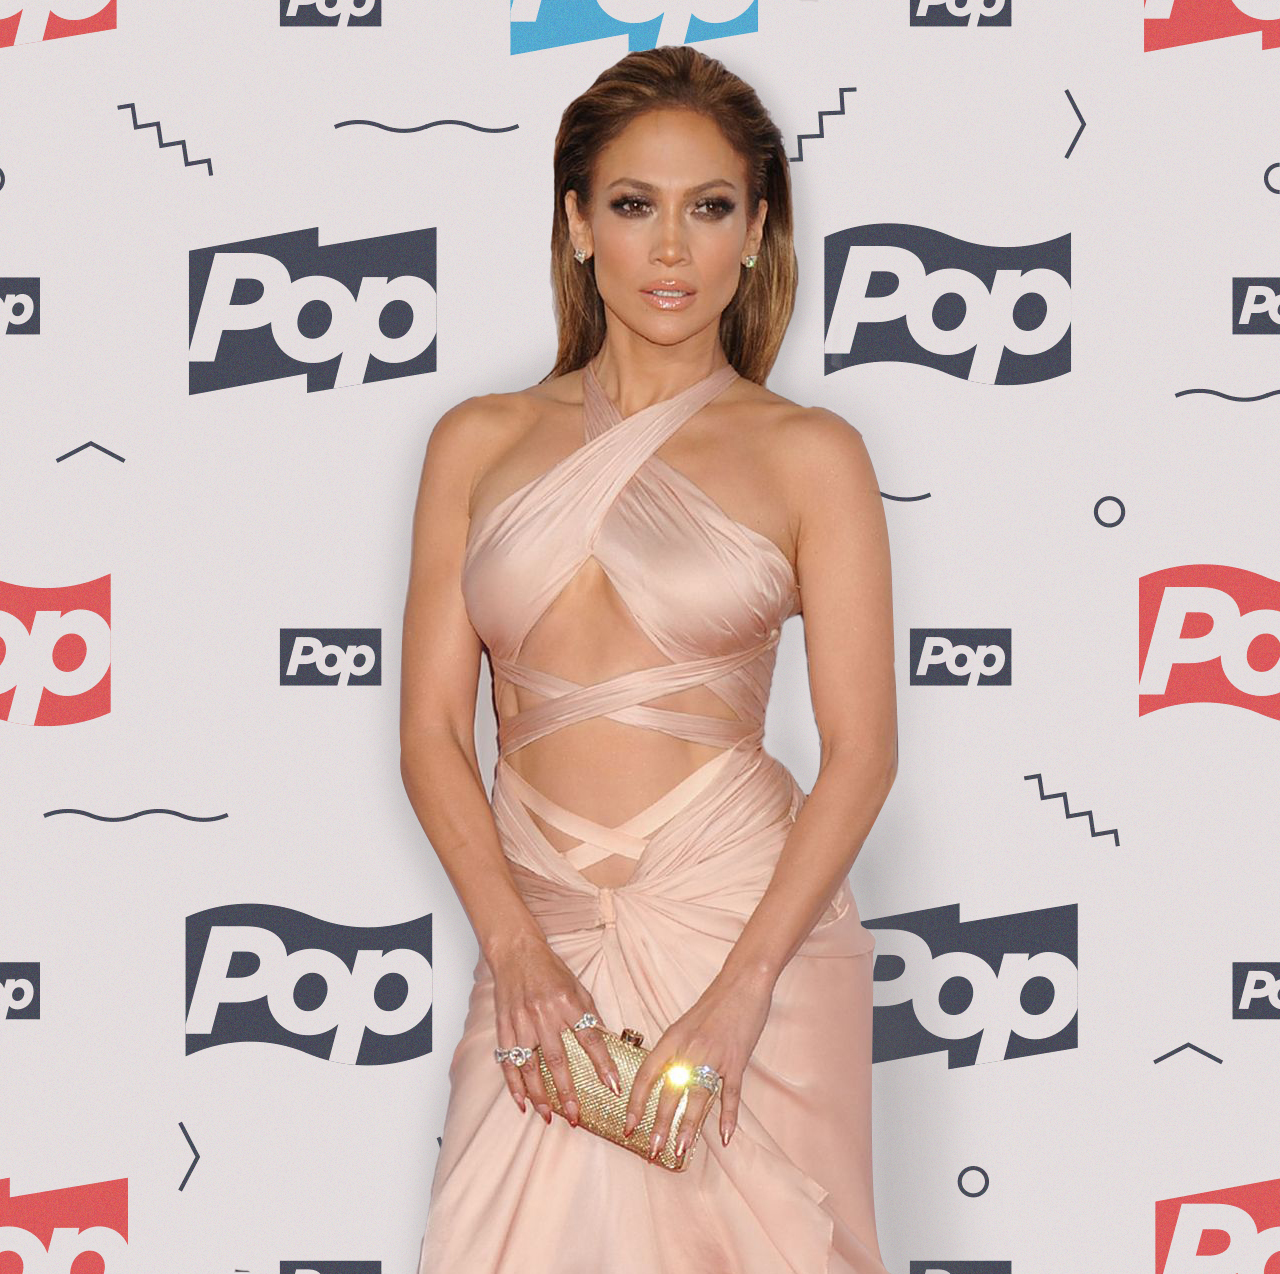 jennifer-lopez-on-red-carpet-2014-american-music-awards-in-los-angeles_6